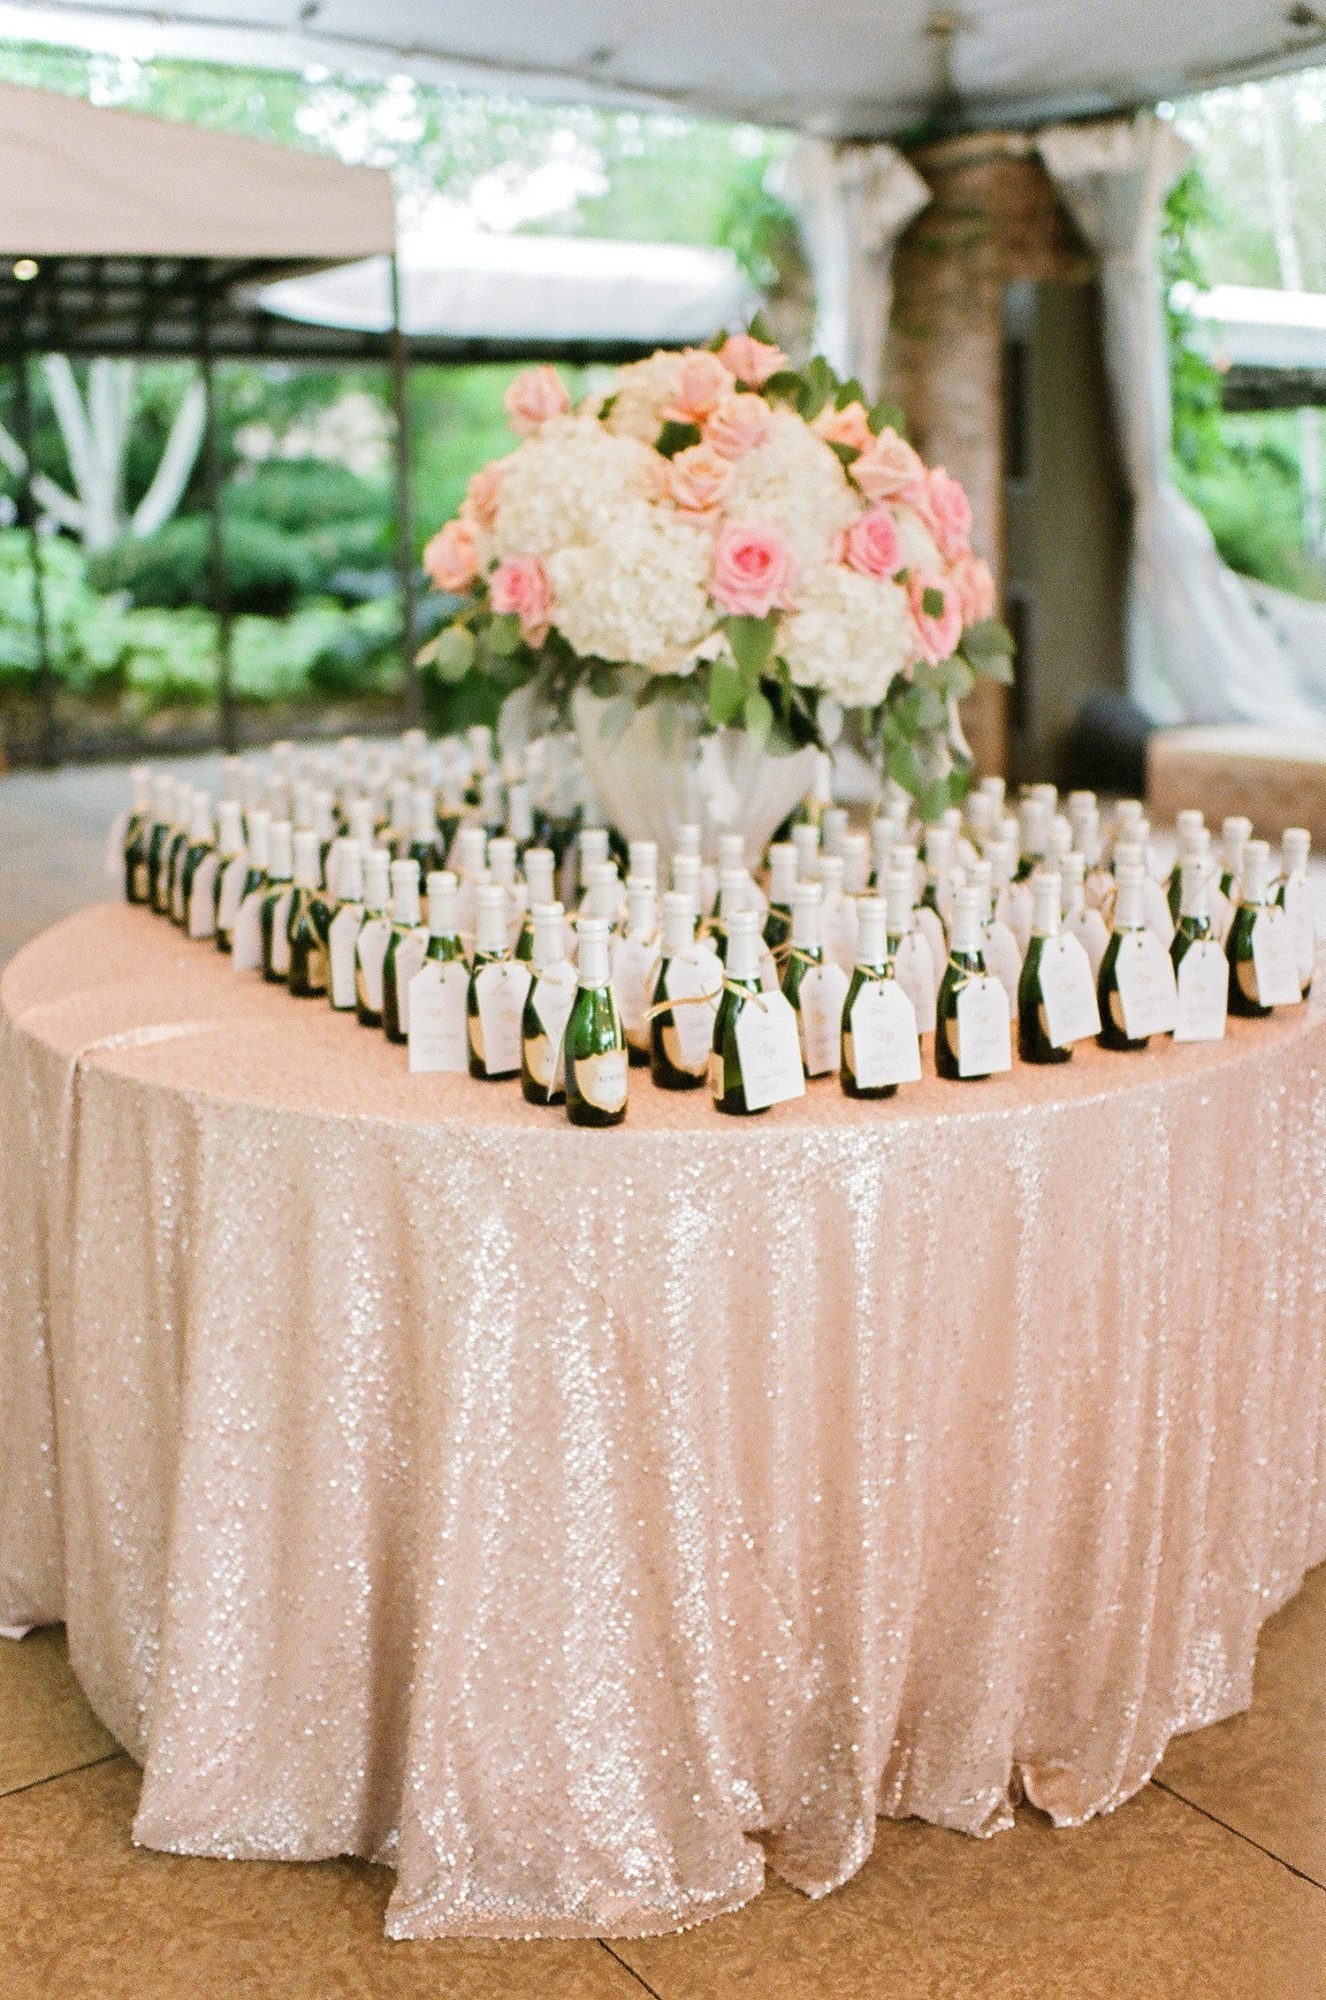 alcohol escort cards mini champagne bottles on round table